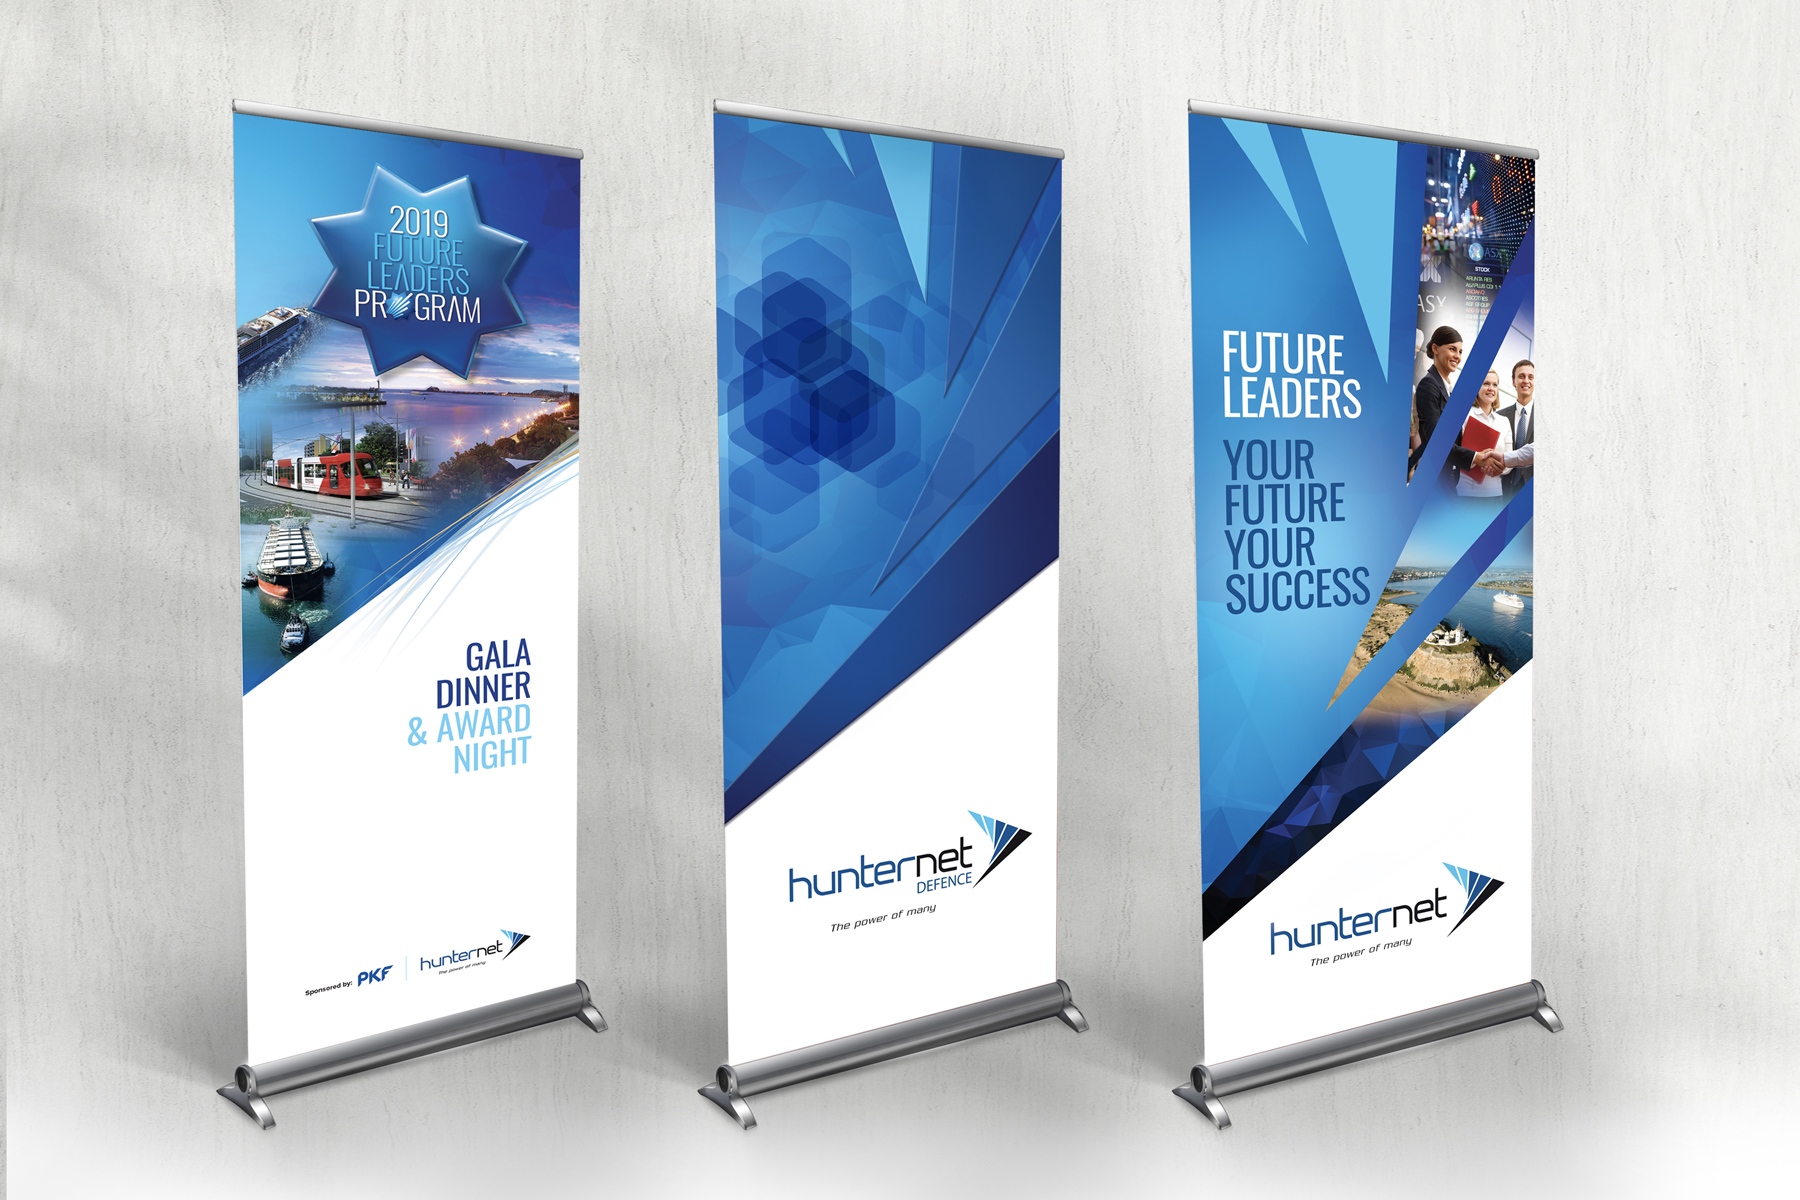 Hunternet Future Leaders Pull Up Banners